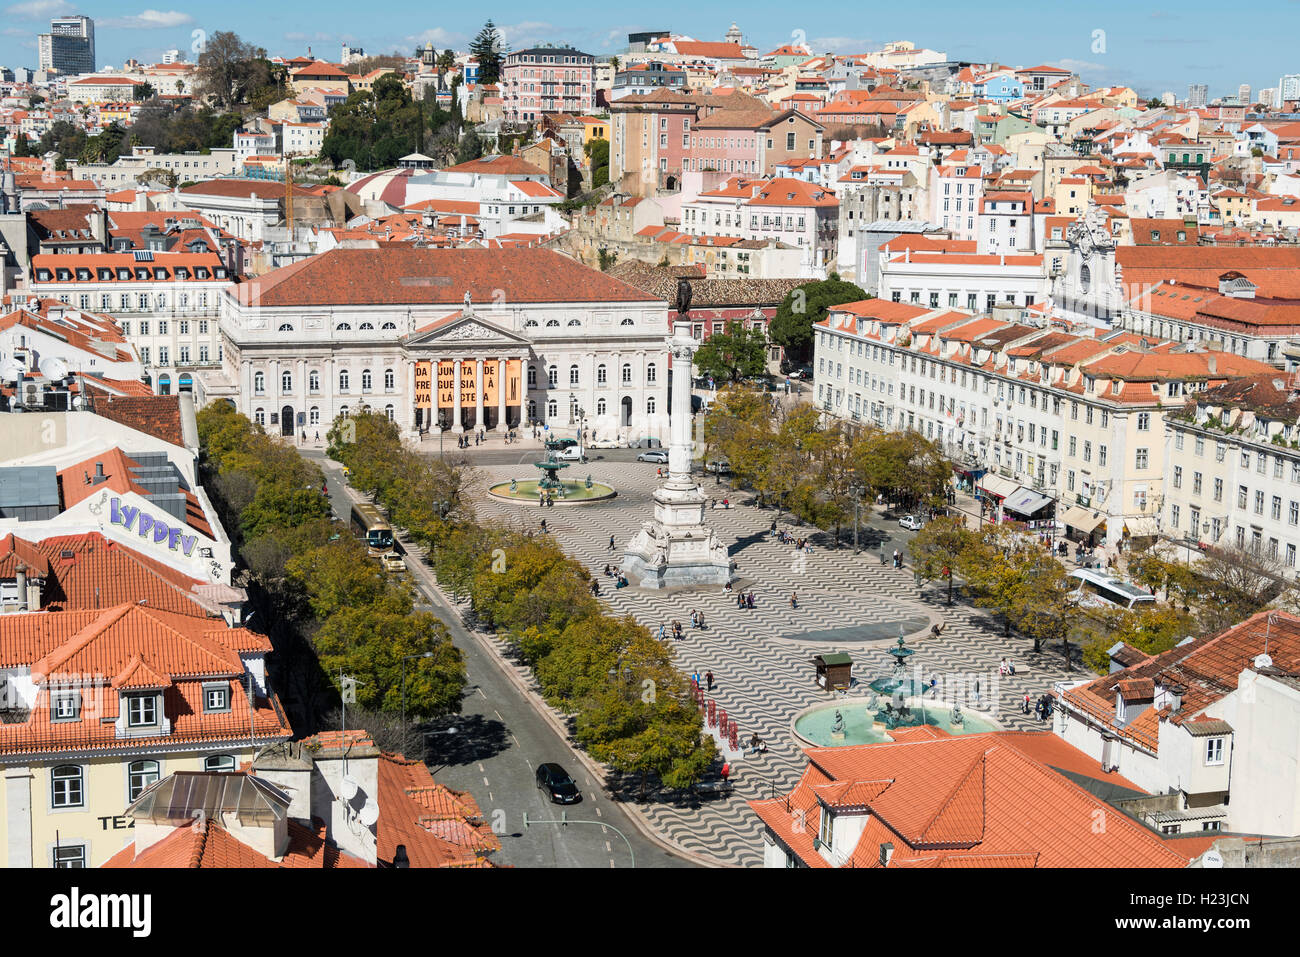 View of historic centre, statue of King Pedro IV in Rossio Square, National Theatre, Baixa, Lisbon, Portugal - Stock Image